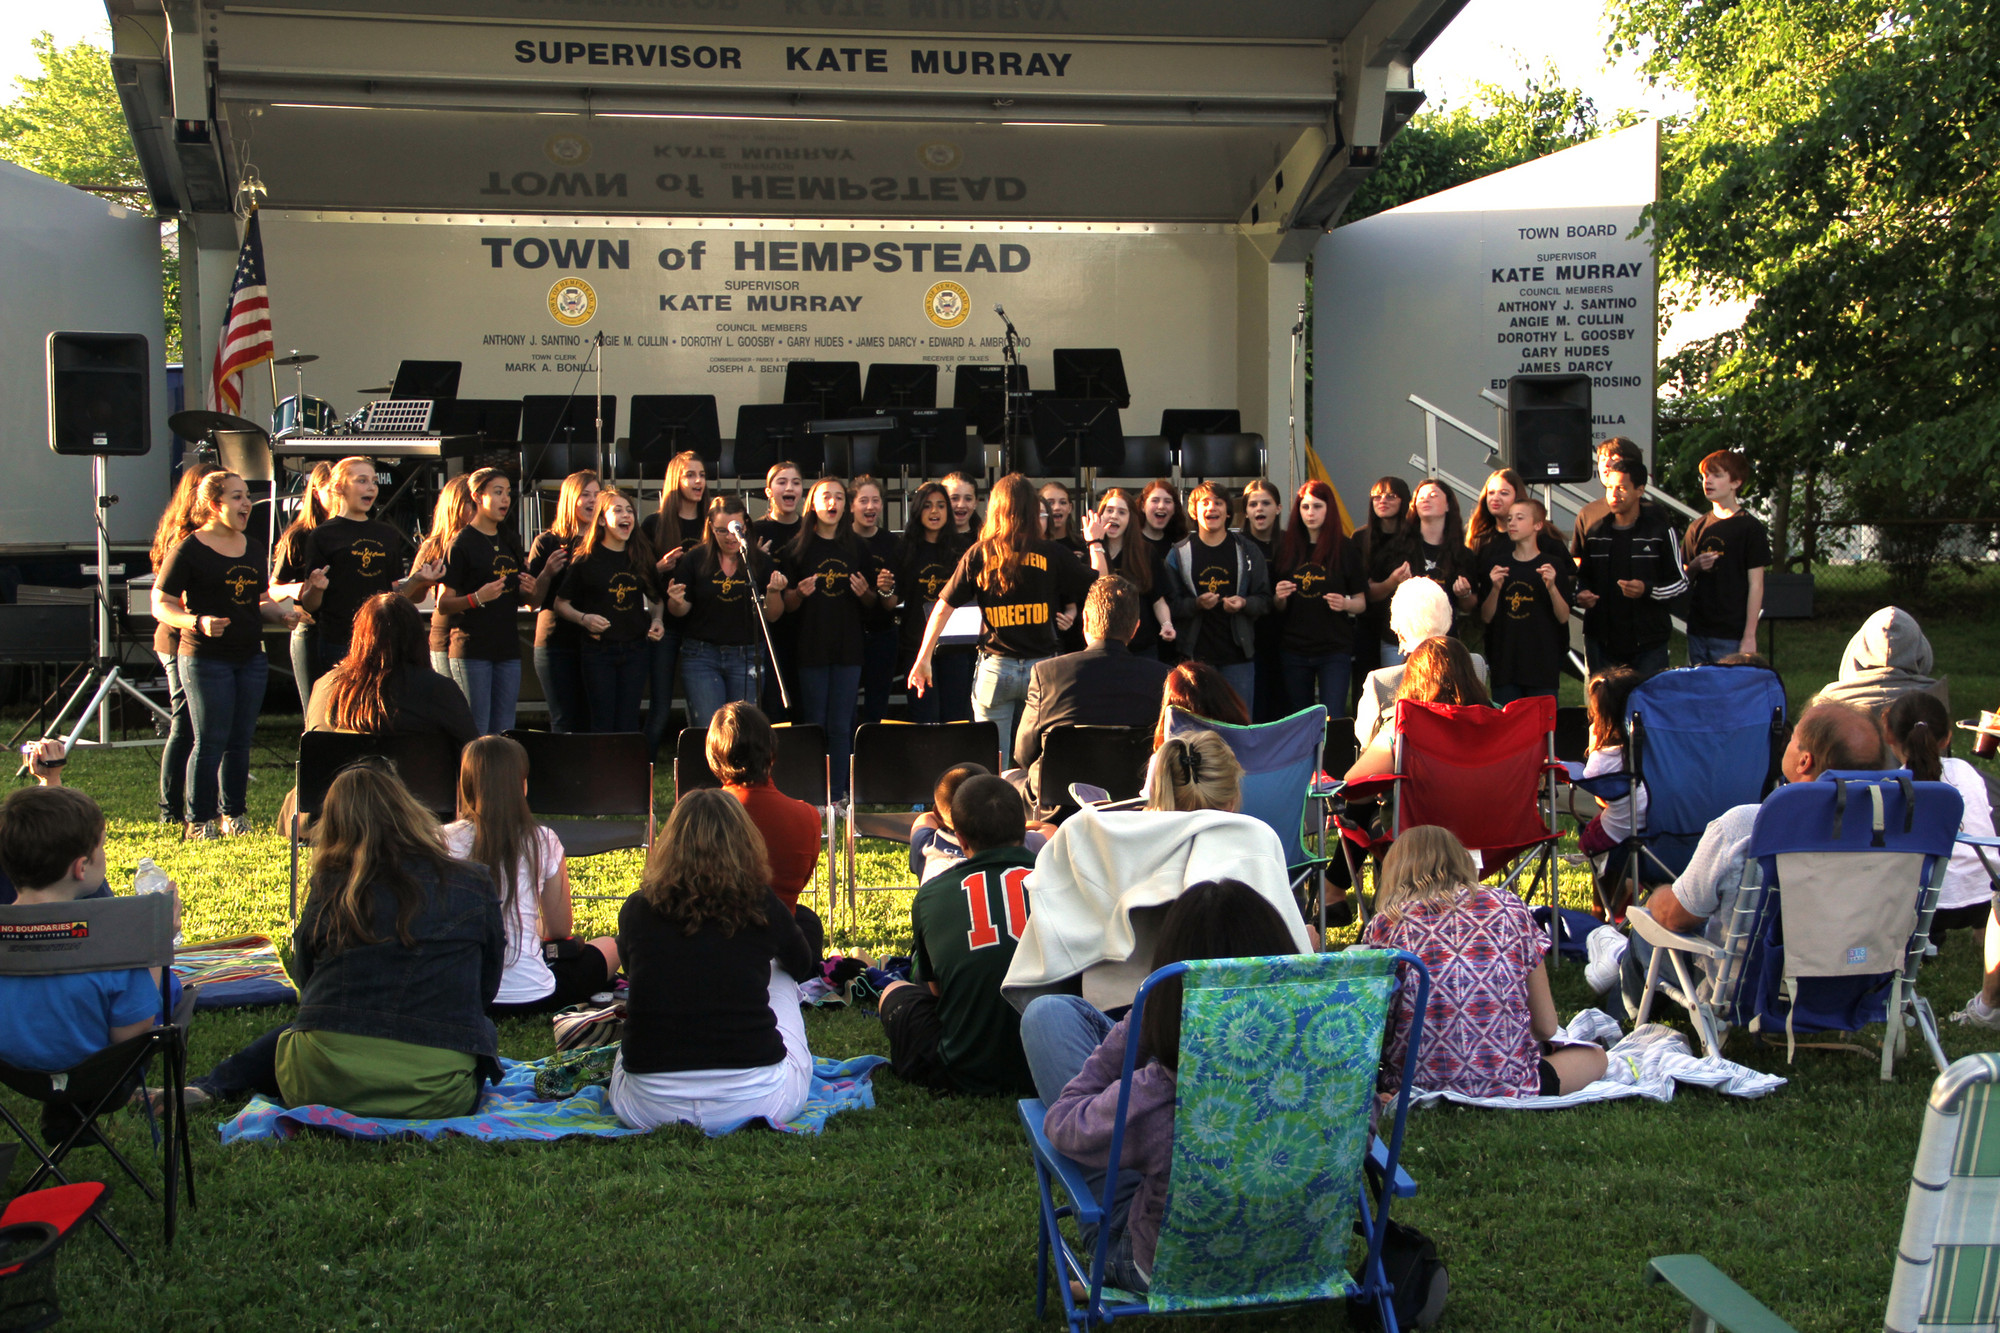 Local residents came to enjoy the Merricks Make Music concert on June 6 at the North Merrick Public Library.